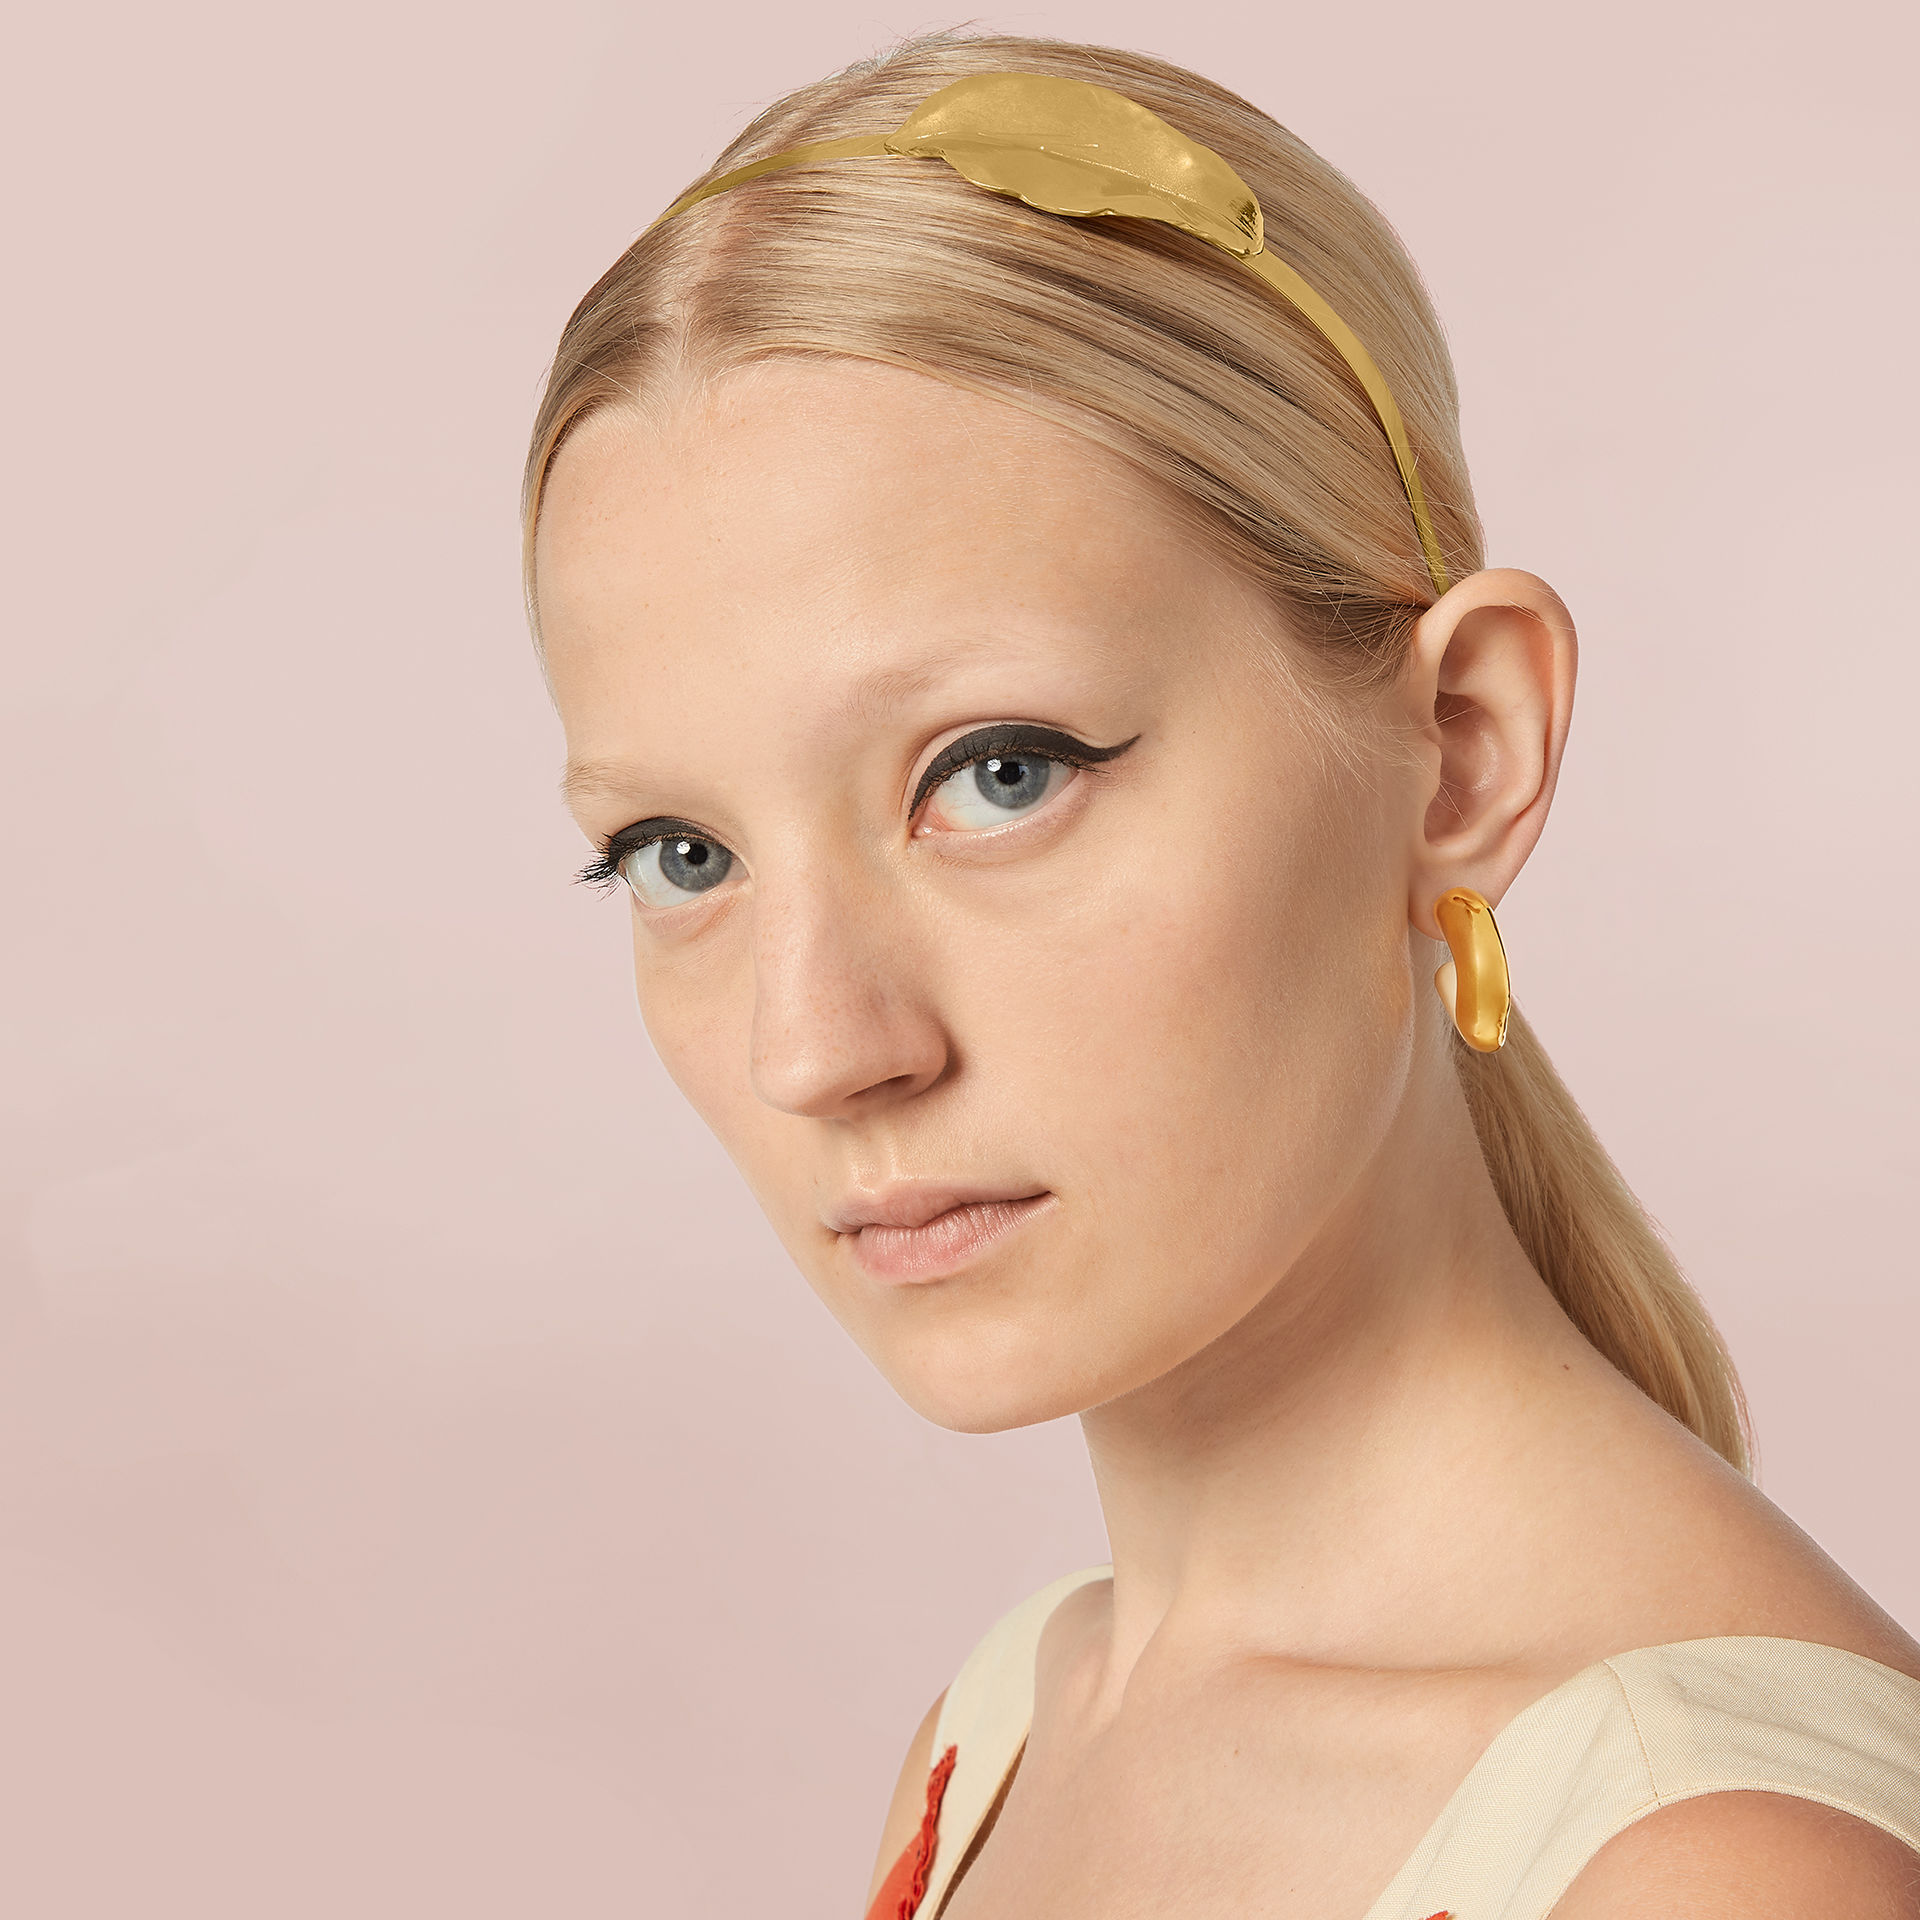 Model wears a golden headband with a leaf decoration